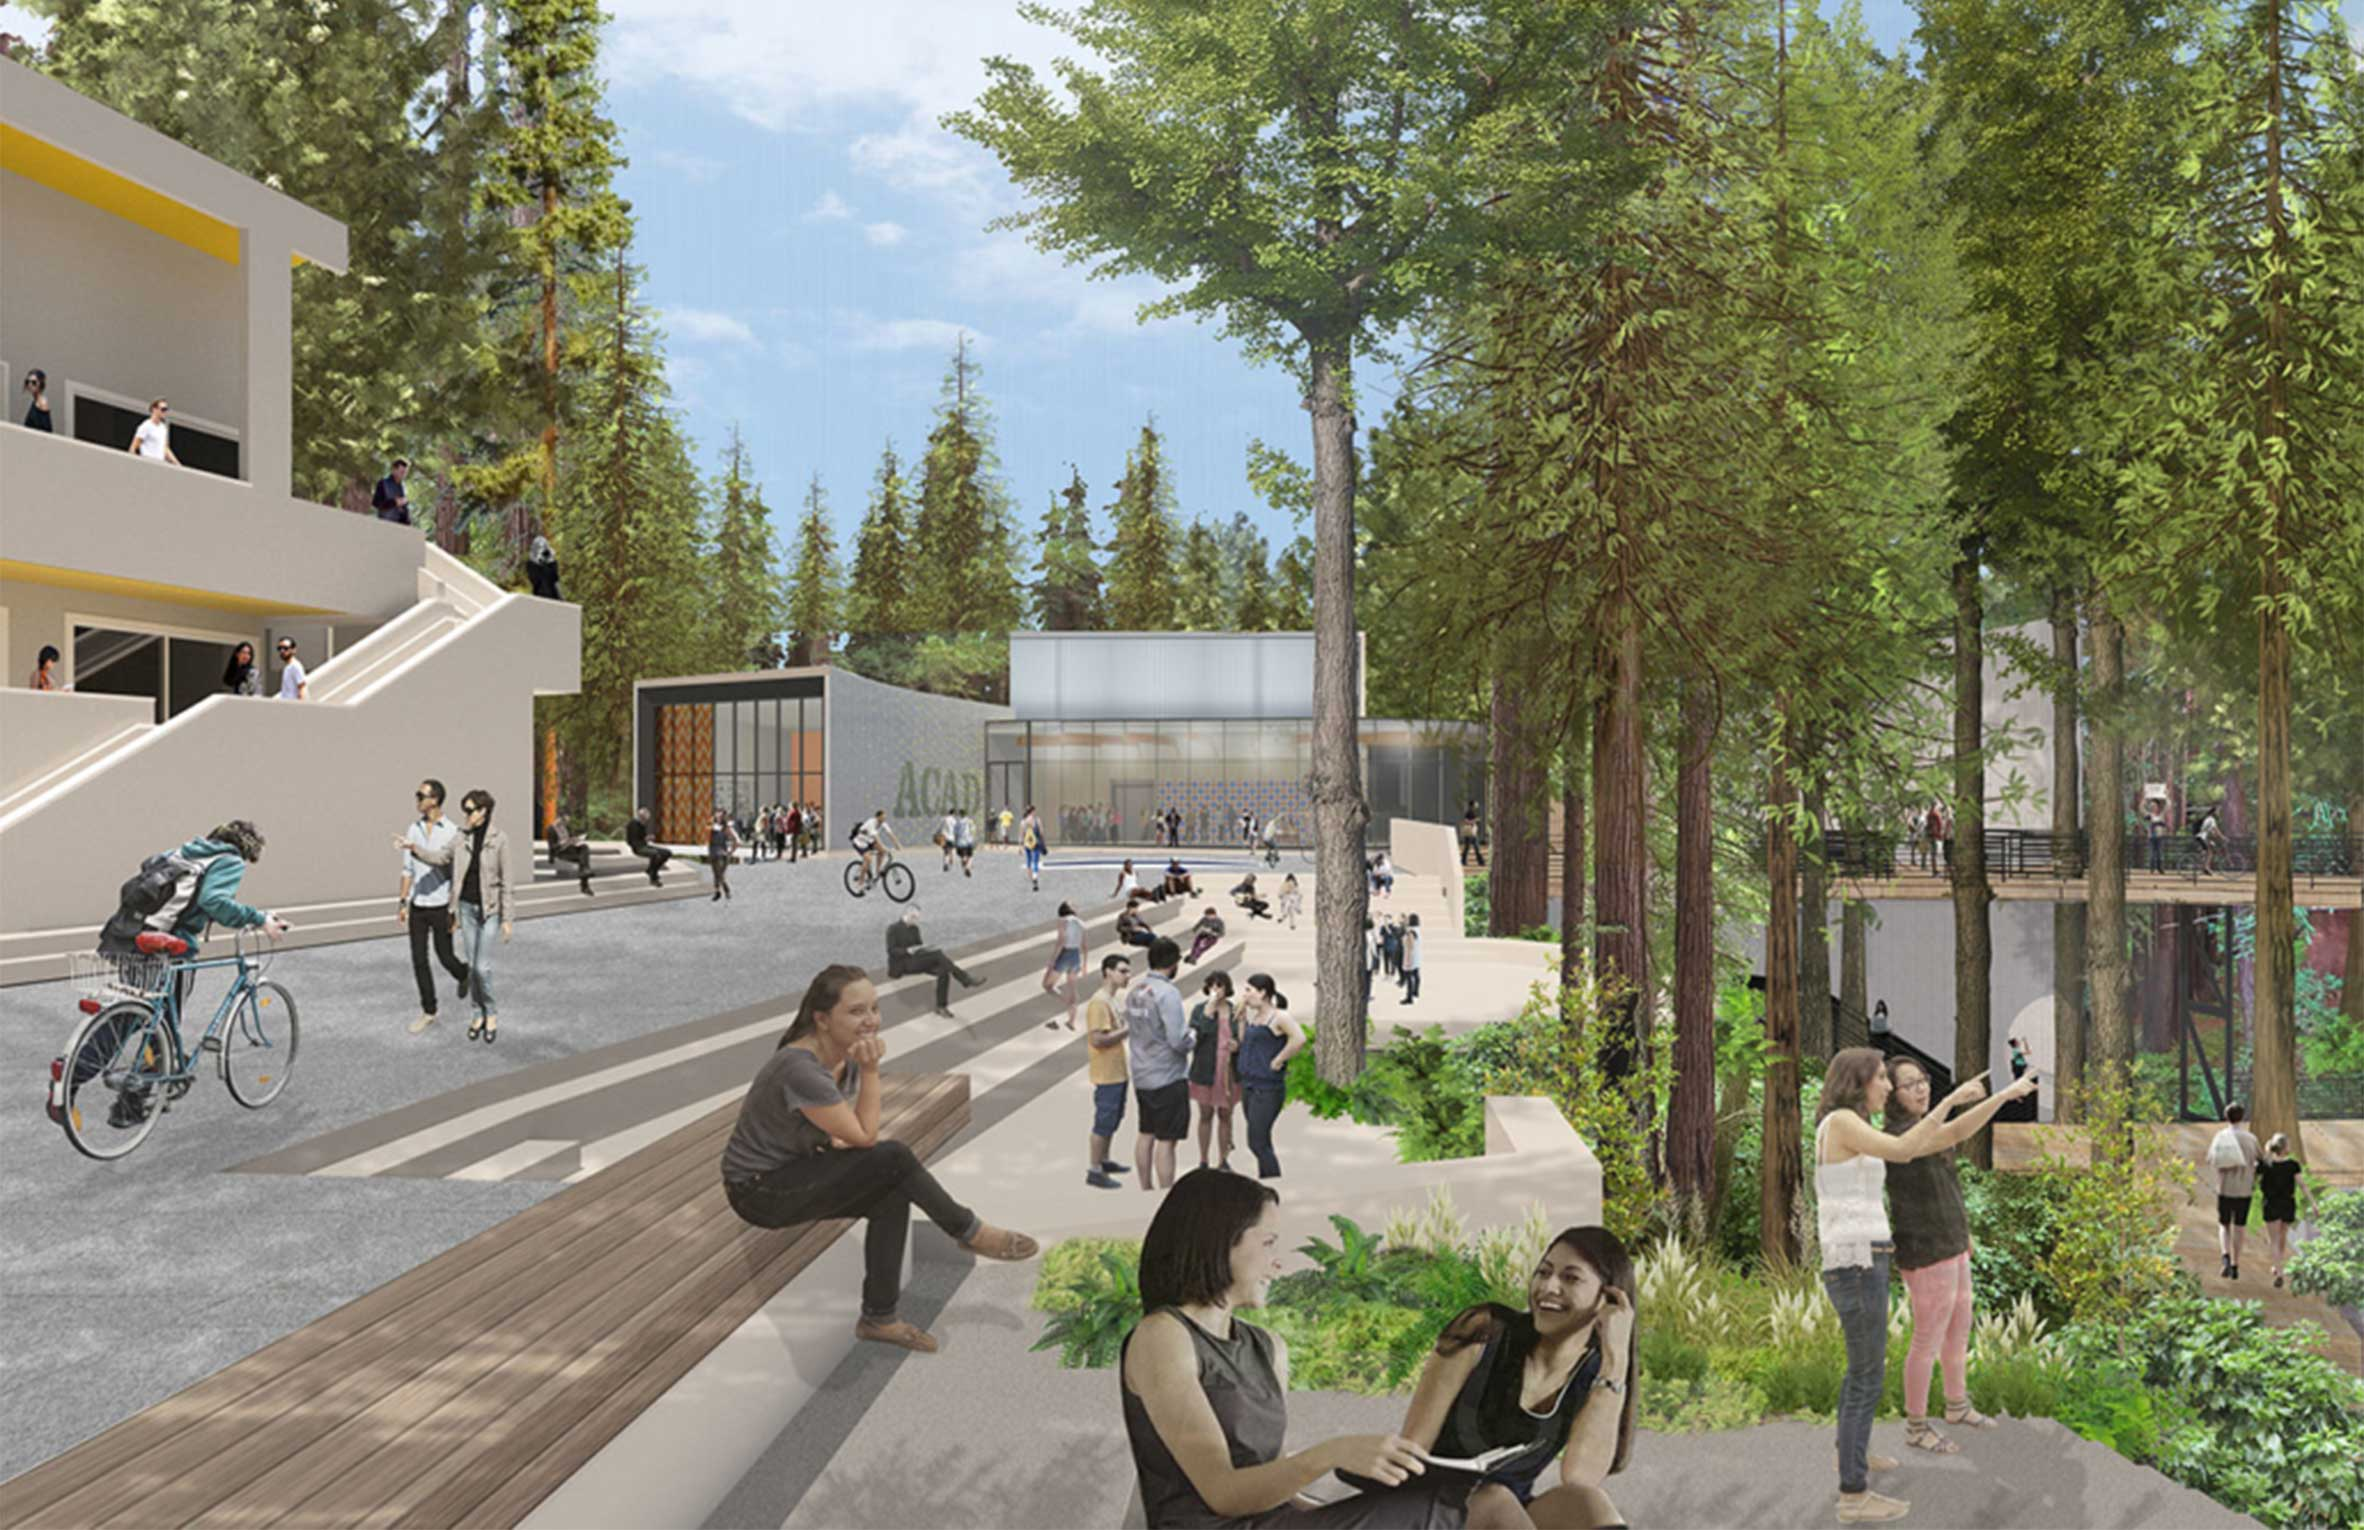 UC Santa Cruz Kresge College Students in Plaza by Redwoods with Mass Timber Components